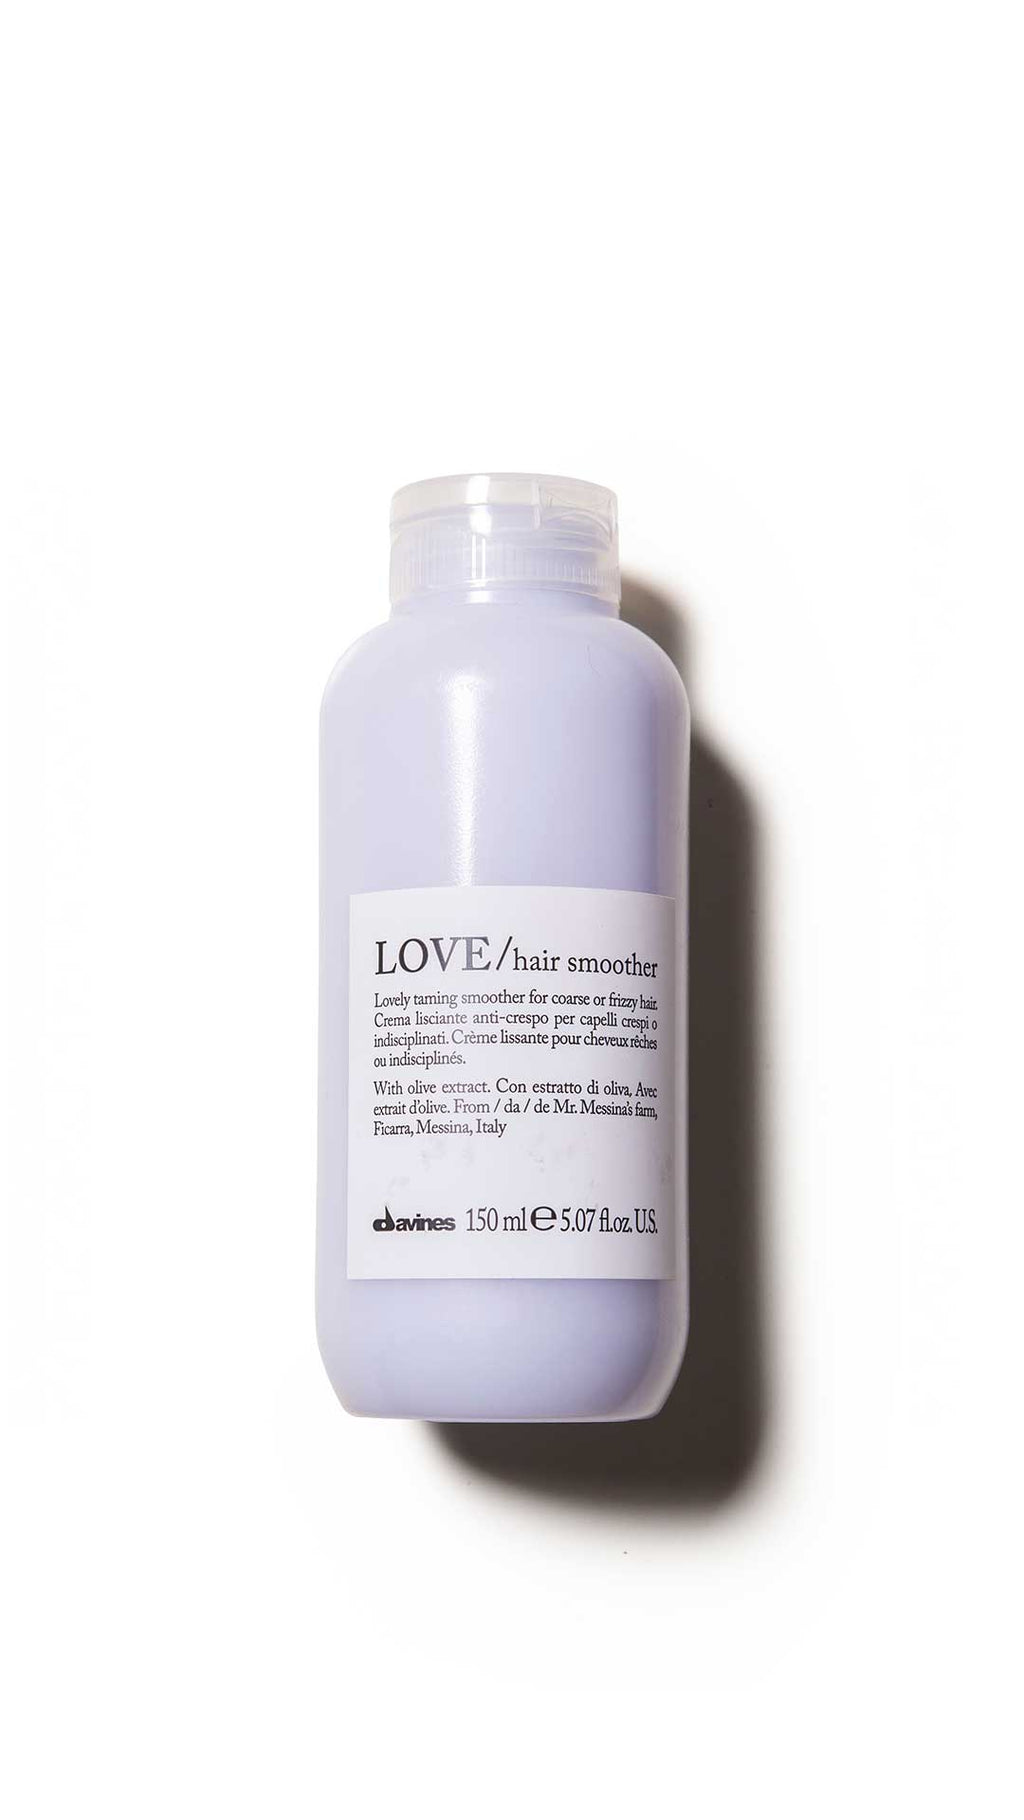 LOVE HAIR SMOOTHER - SOIN LISSANT - DAVINES